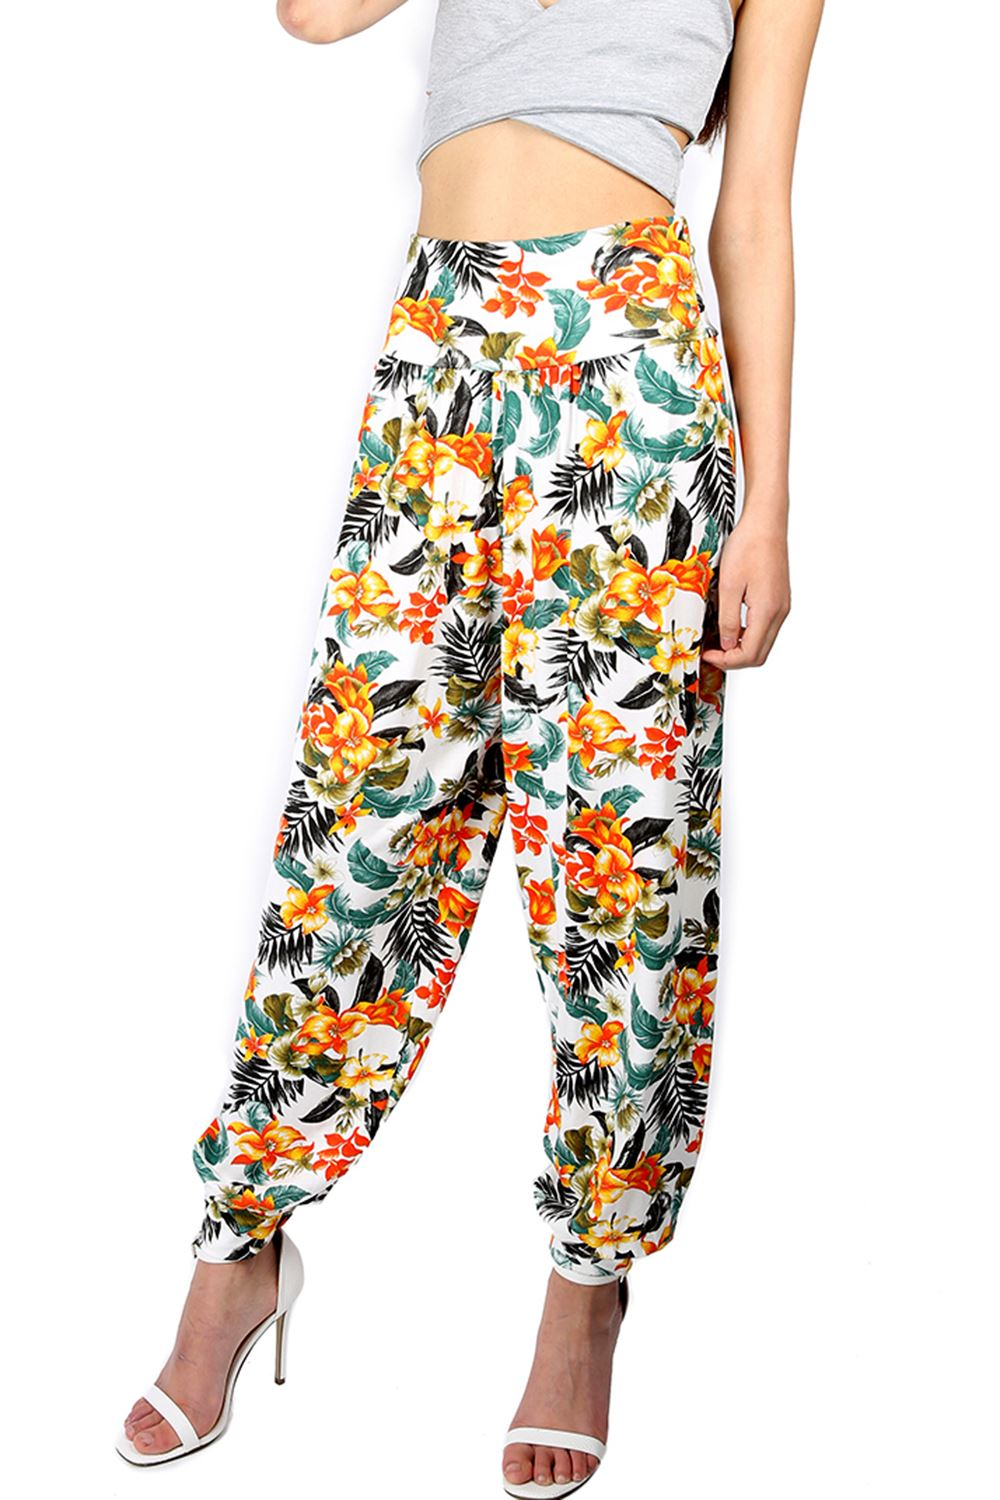 New Womens Ali Baba Trousers Ladies Harem Pants Floral ...